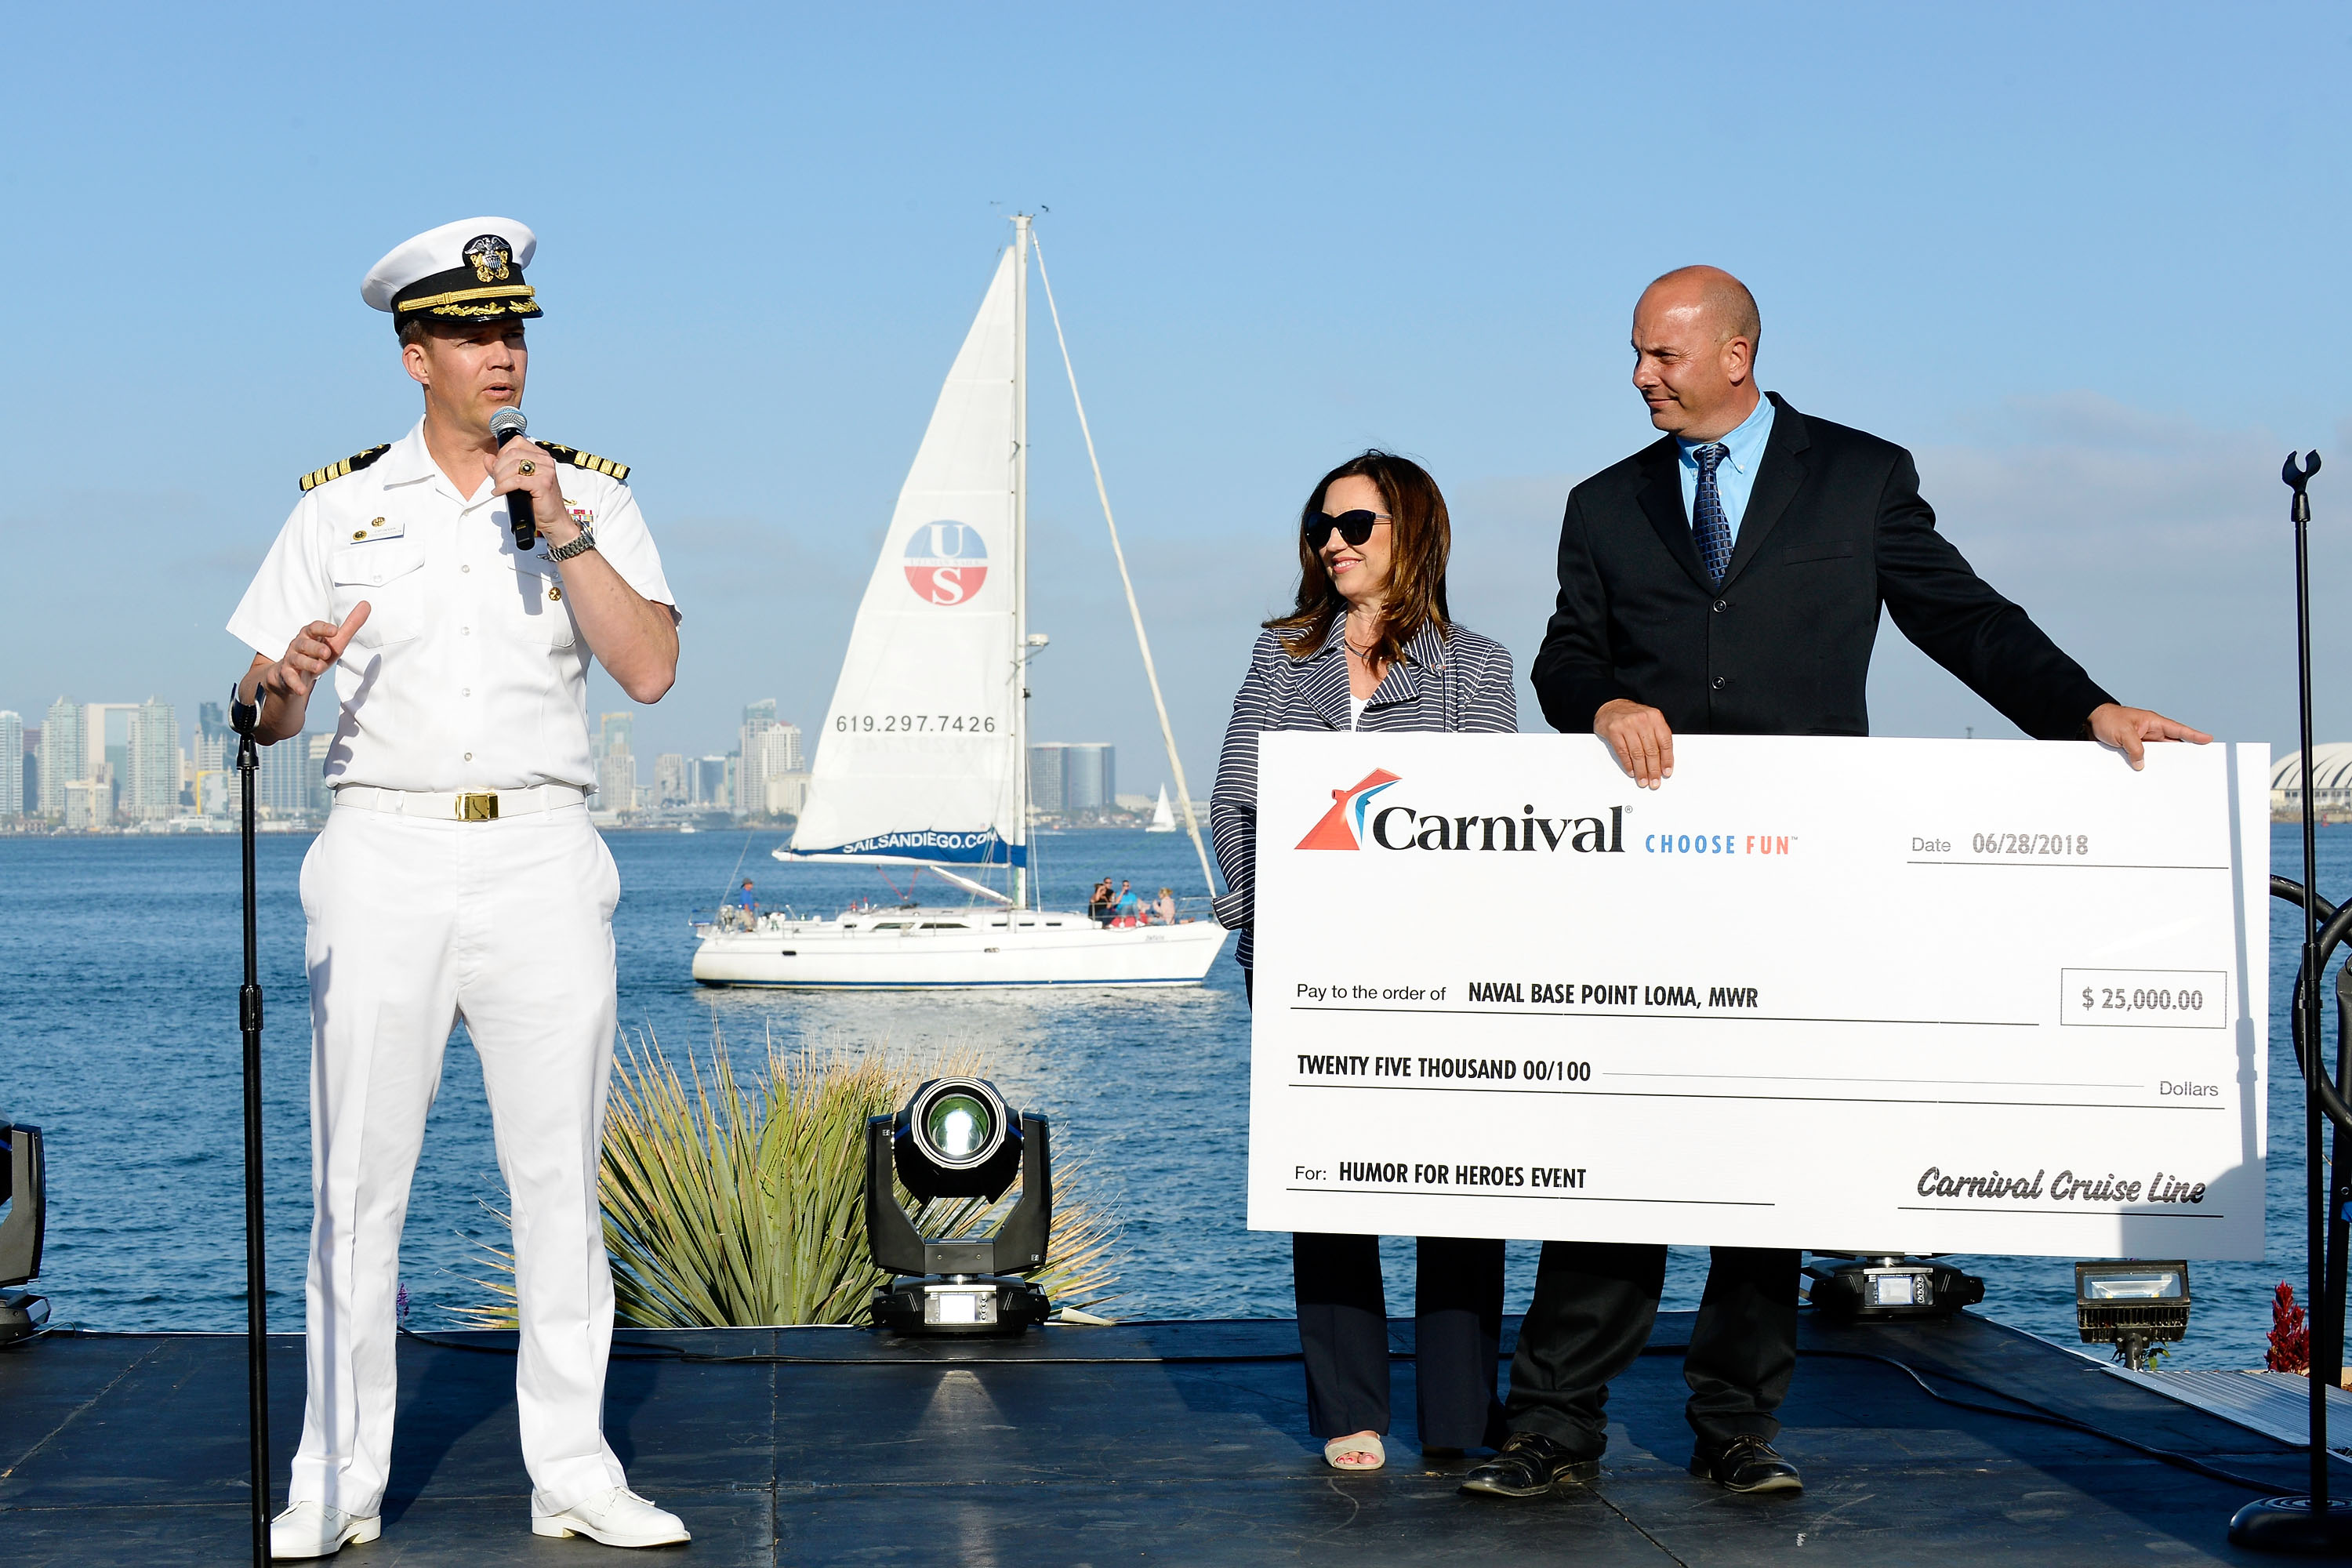 Αποτέλεσμα εικόνας για Carnival Cruise Line Hosts 'Humor for Heroes' Event at Naval Base Point Loma In San Diego Featuring Special Comedy Performance for 500 Military Personnel